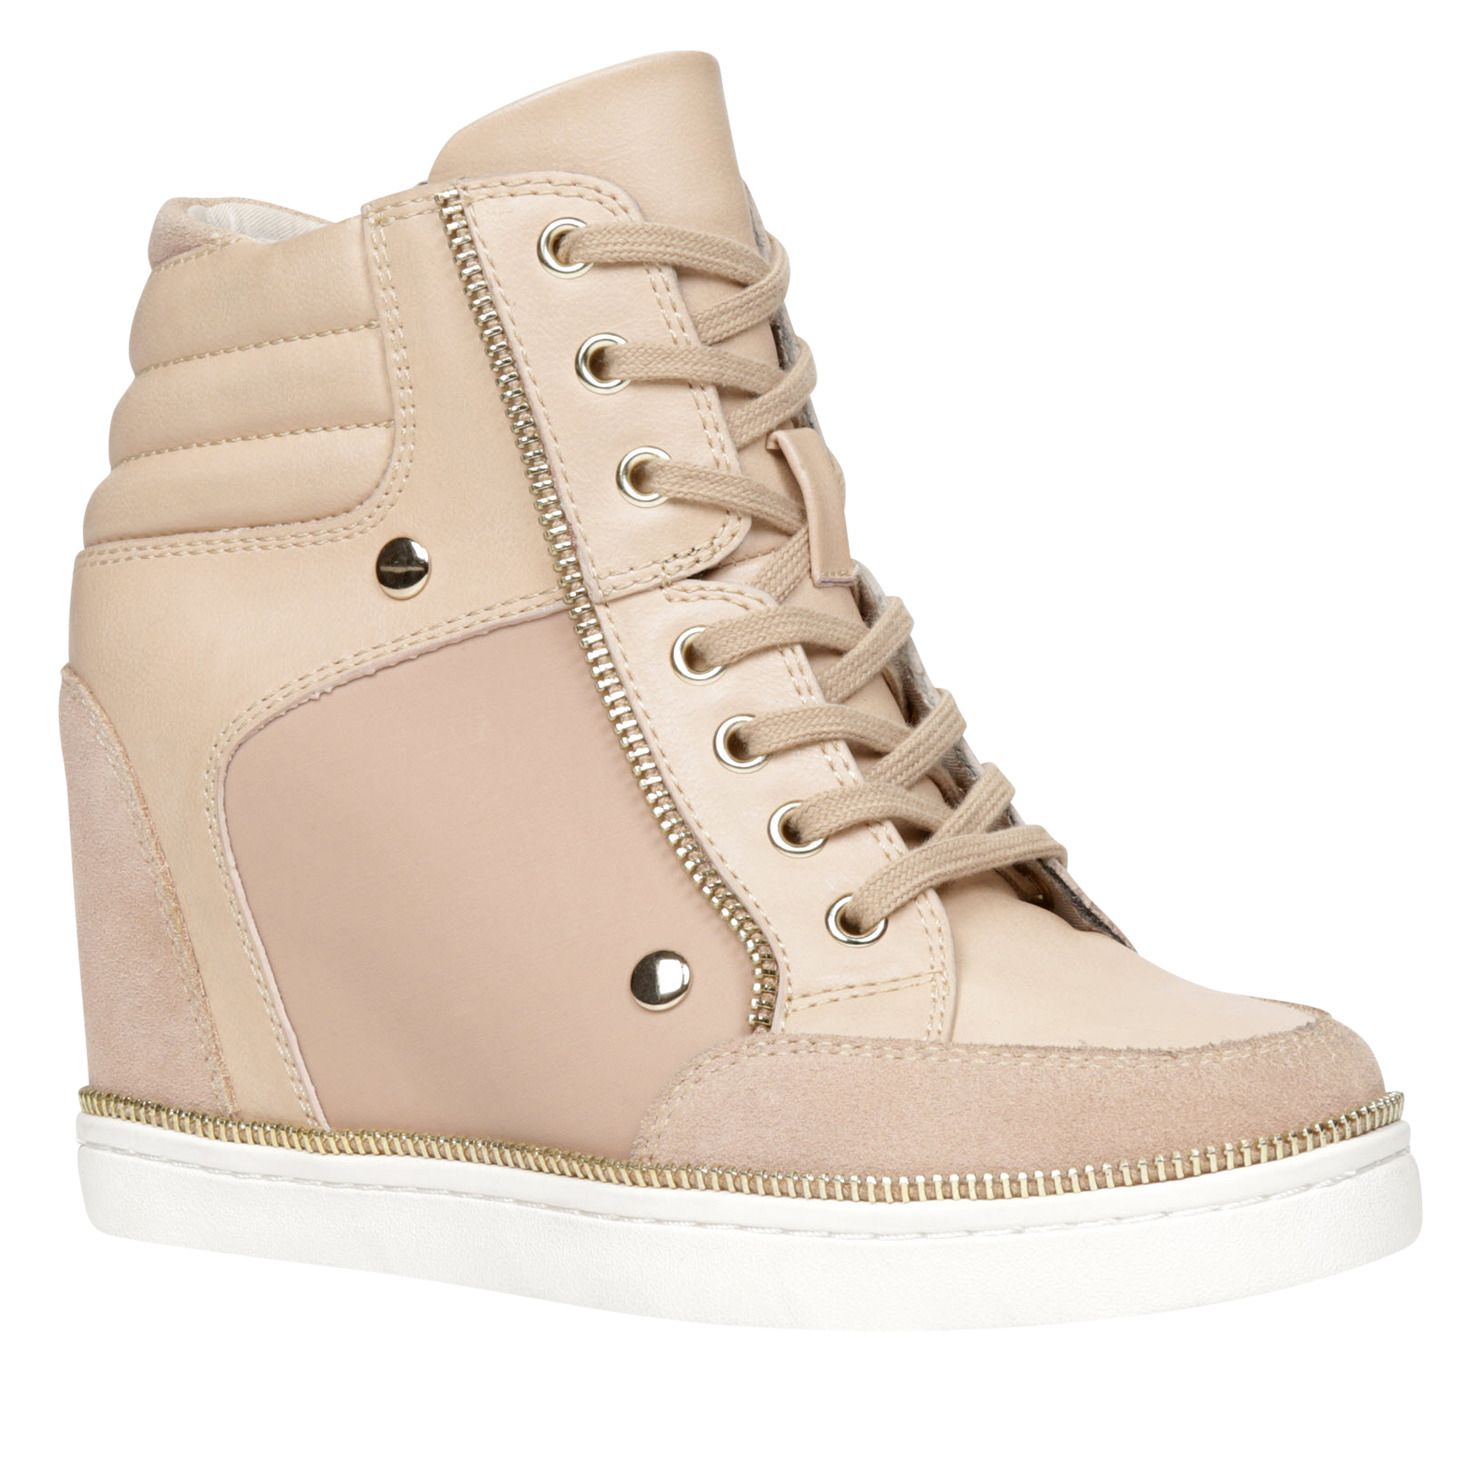 1926676db07 CIAMBAVE - women's sneakers shoes for sale at ALDO Shoes. | sneakers ...